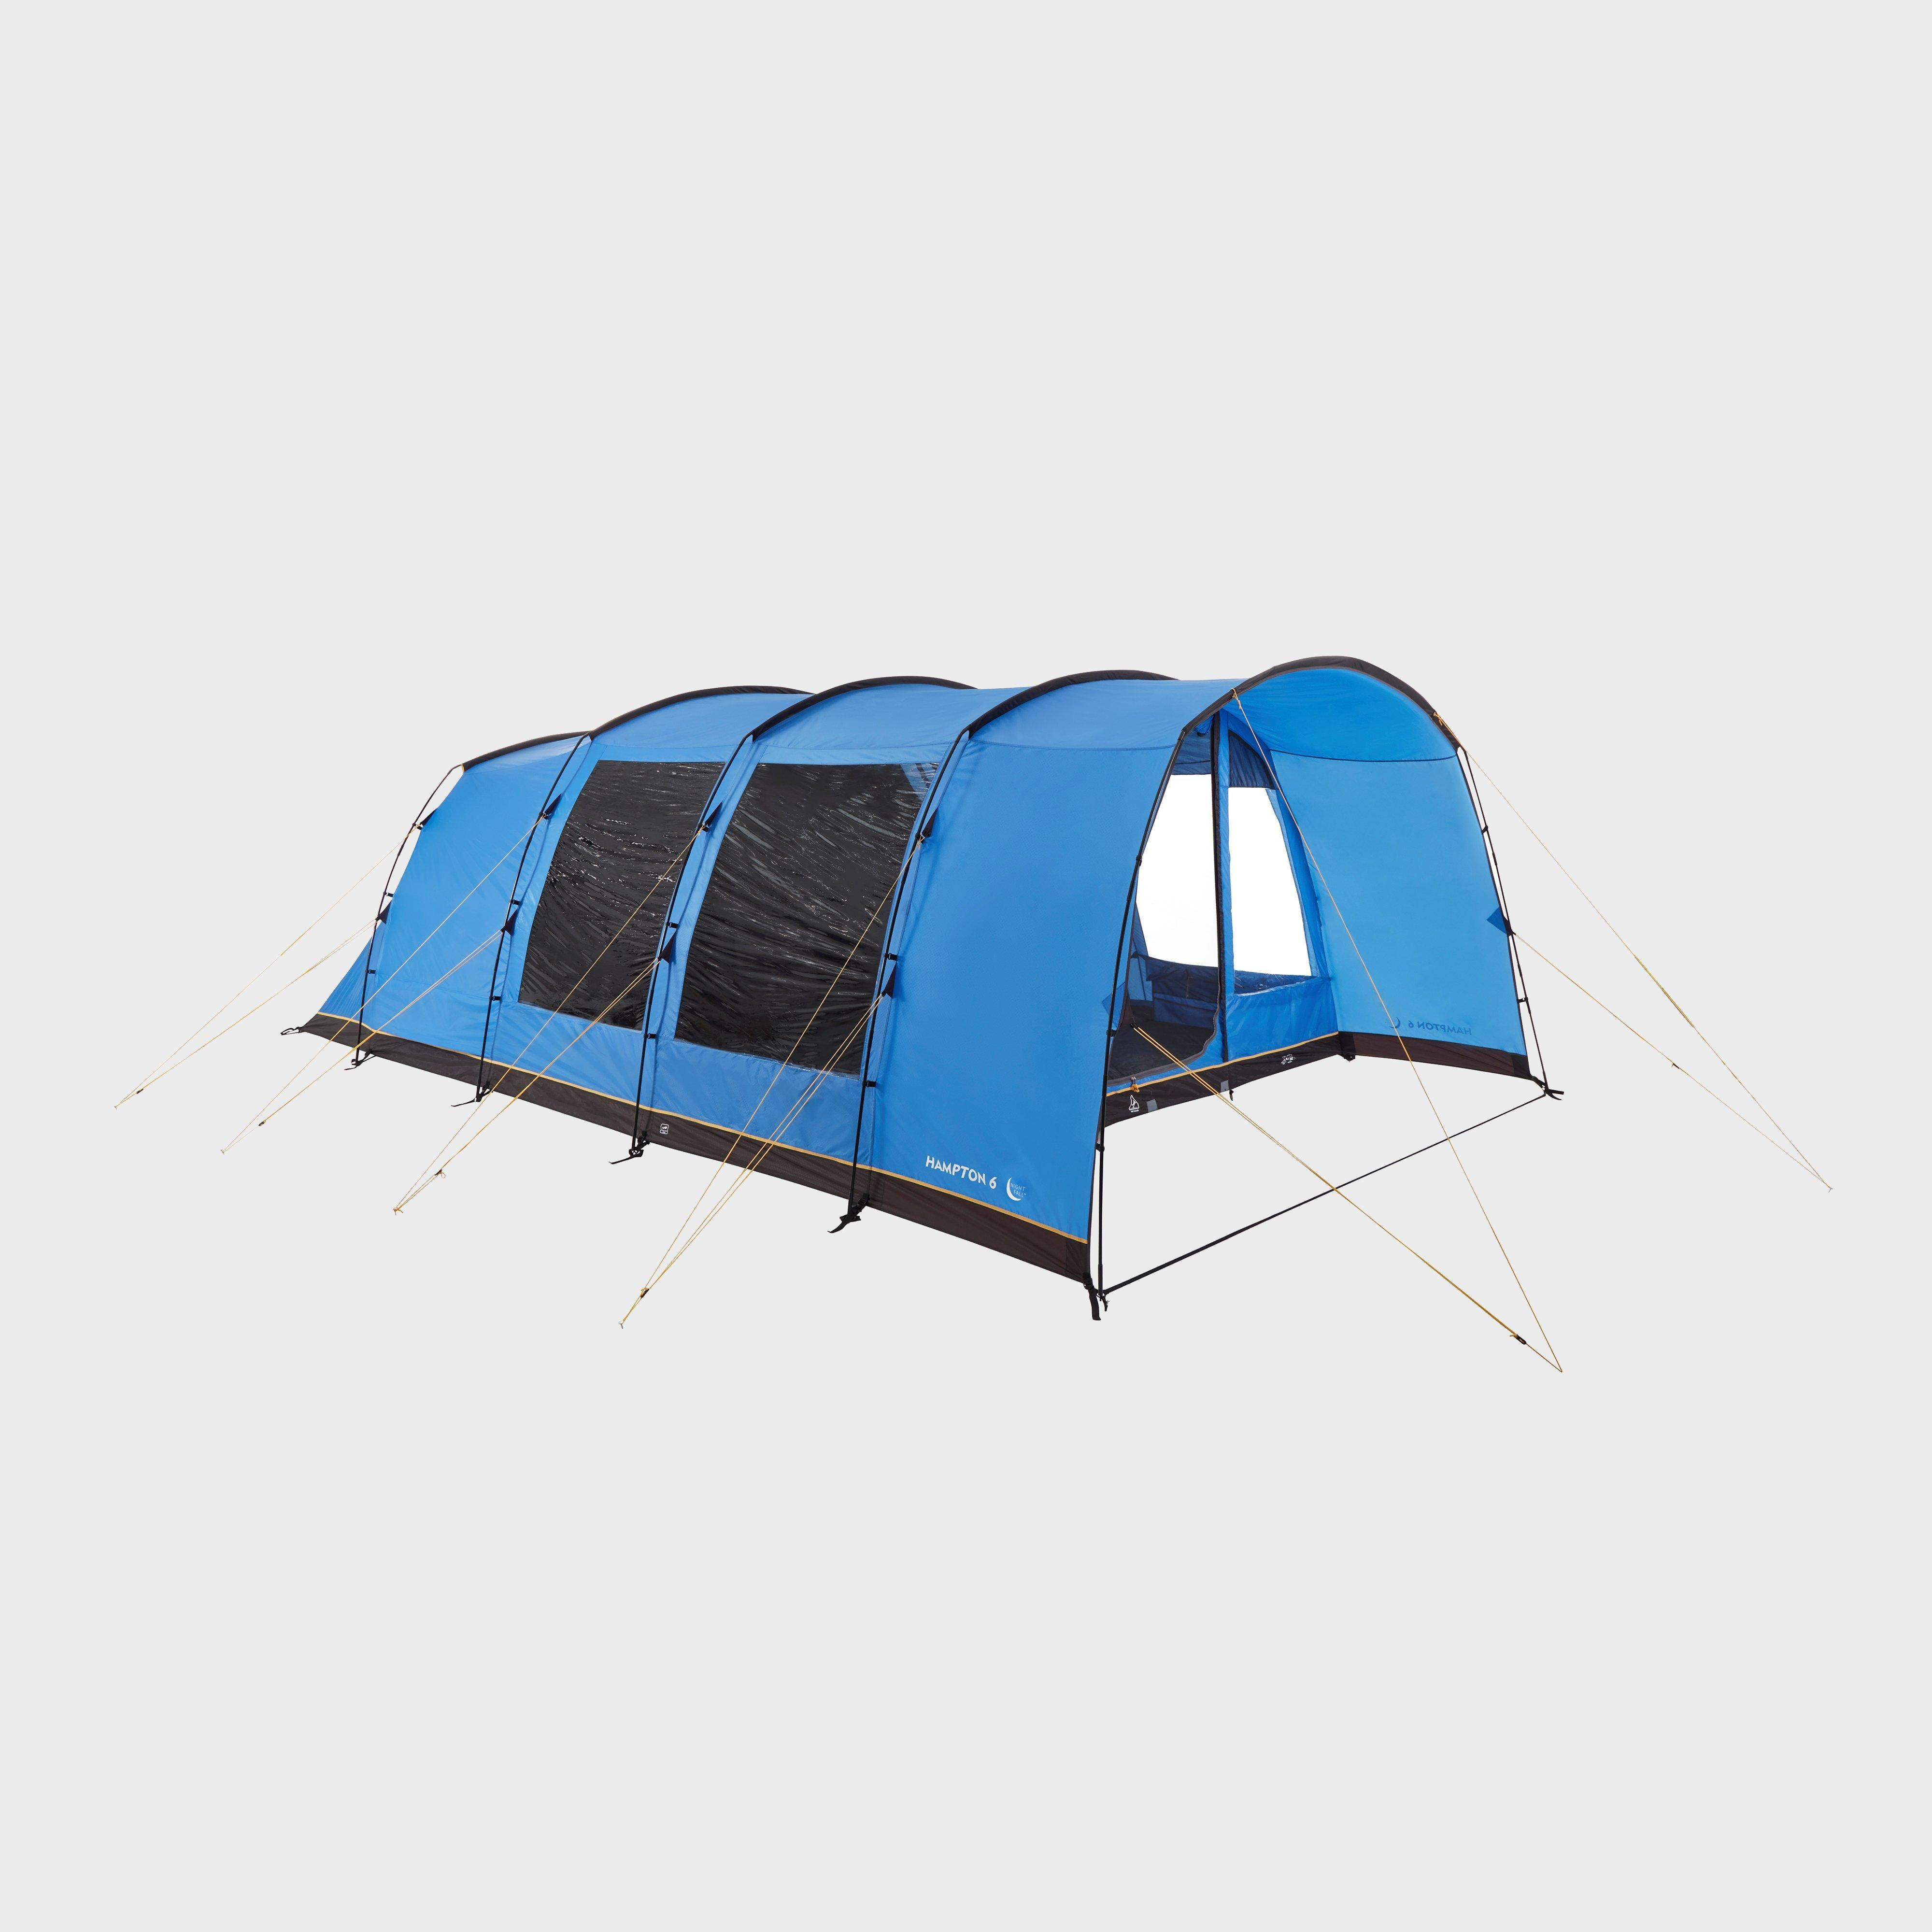 HI-GEAR Hampton 6 Nightfall Family Tent, IGO/IGO